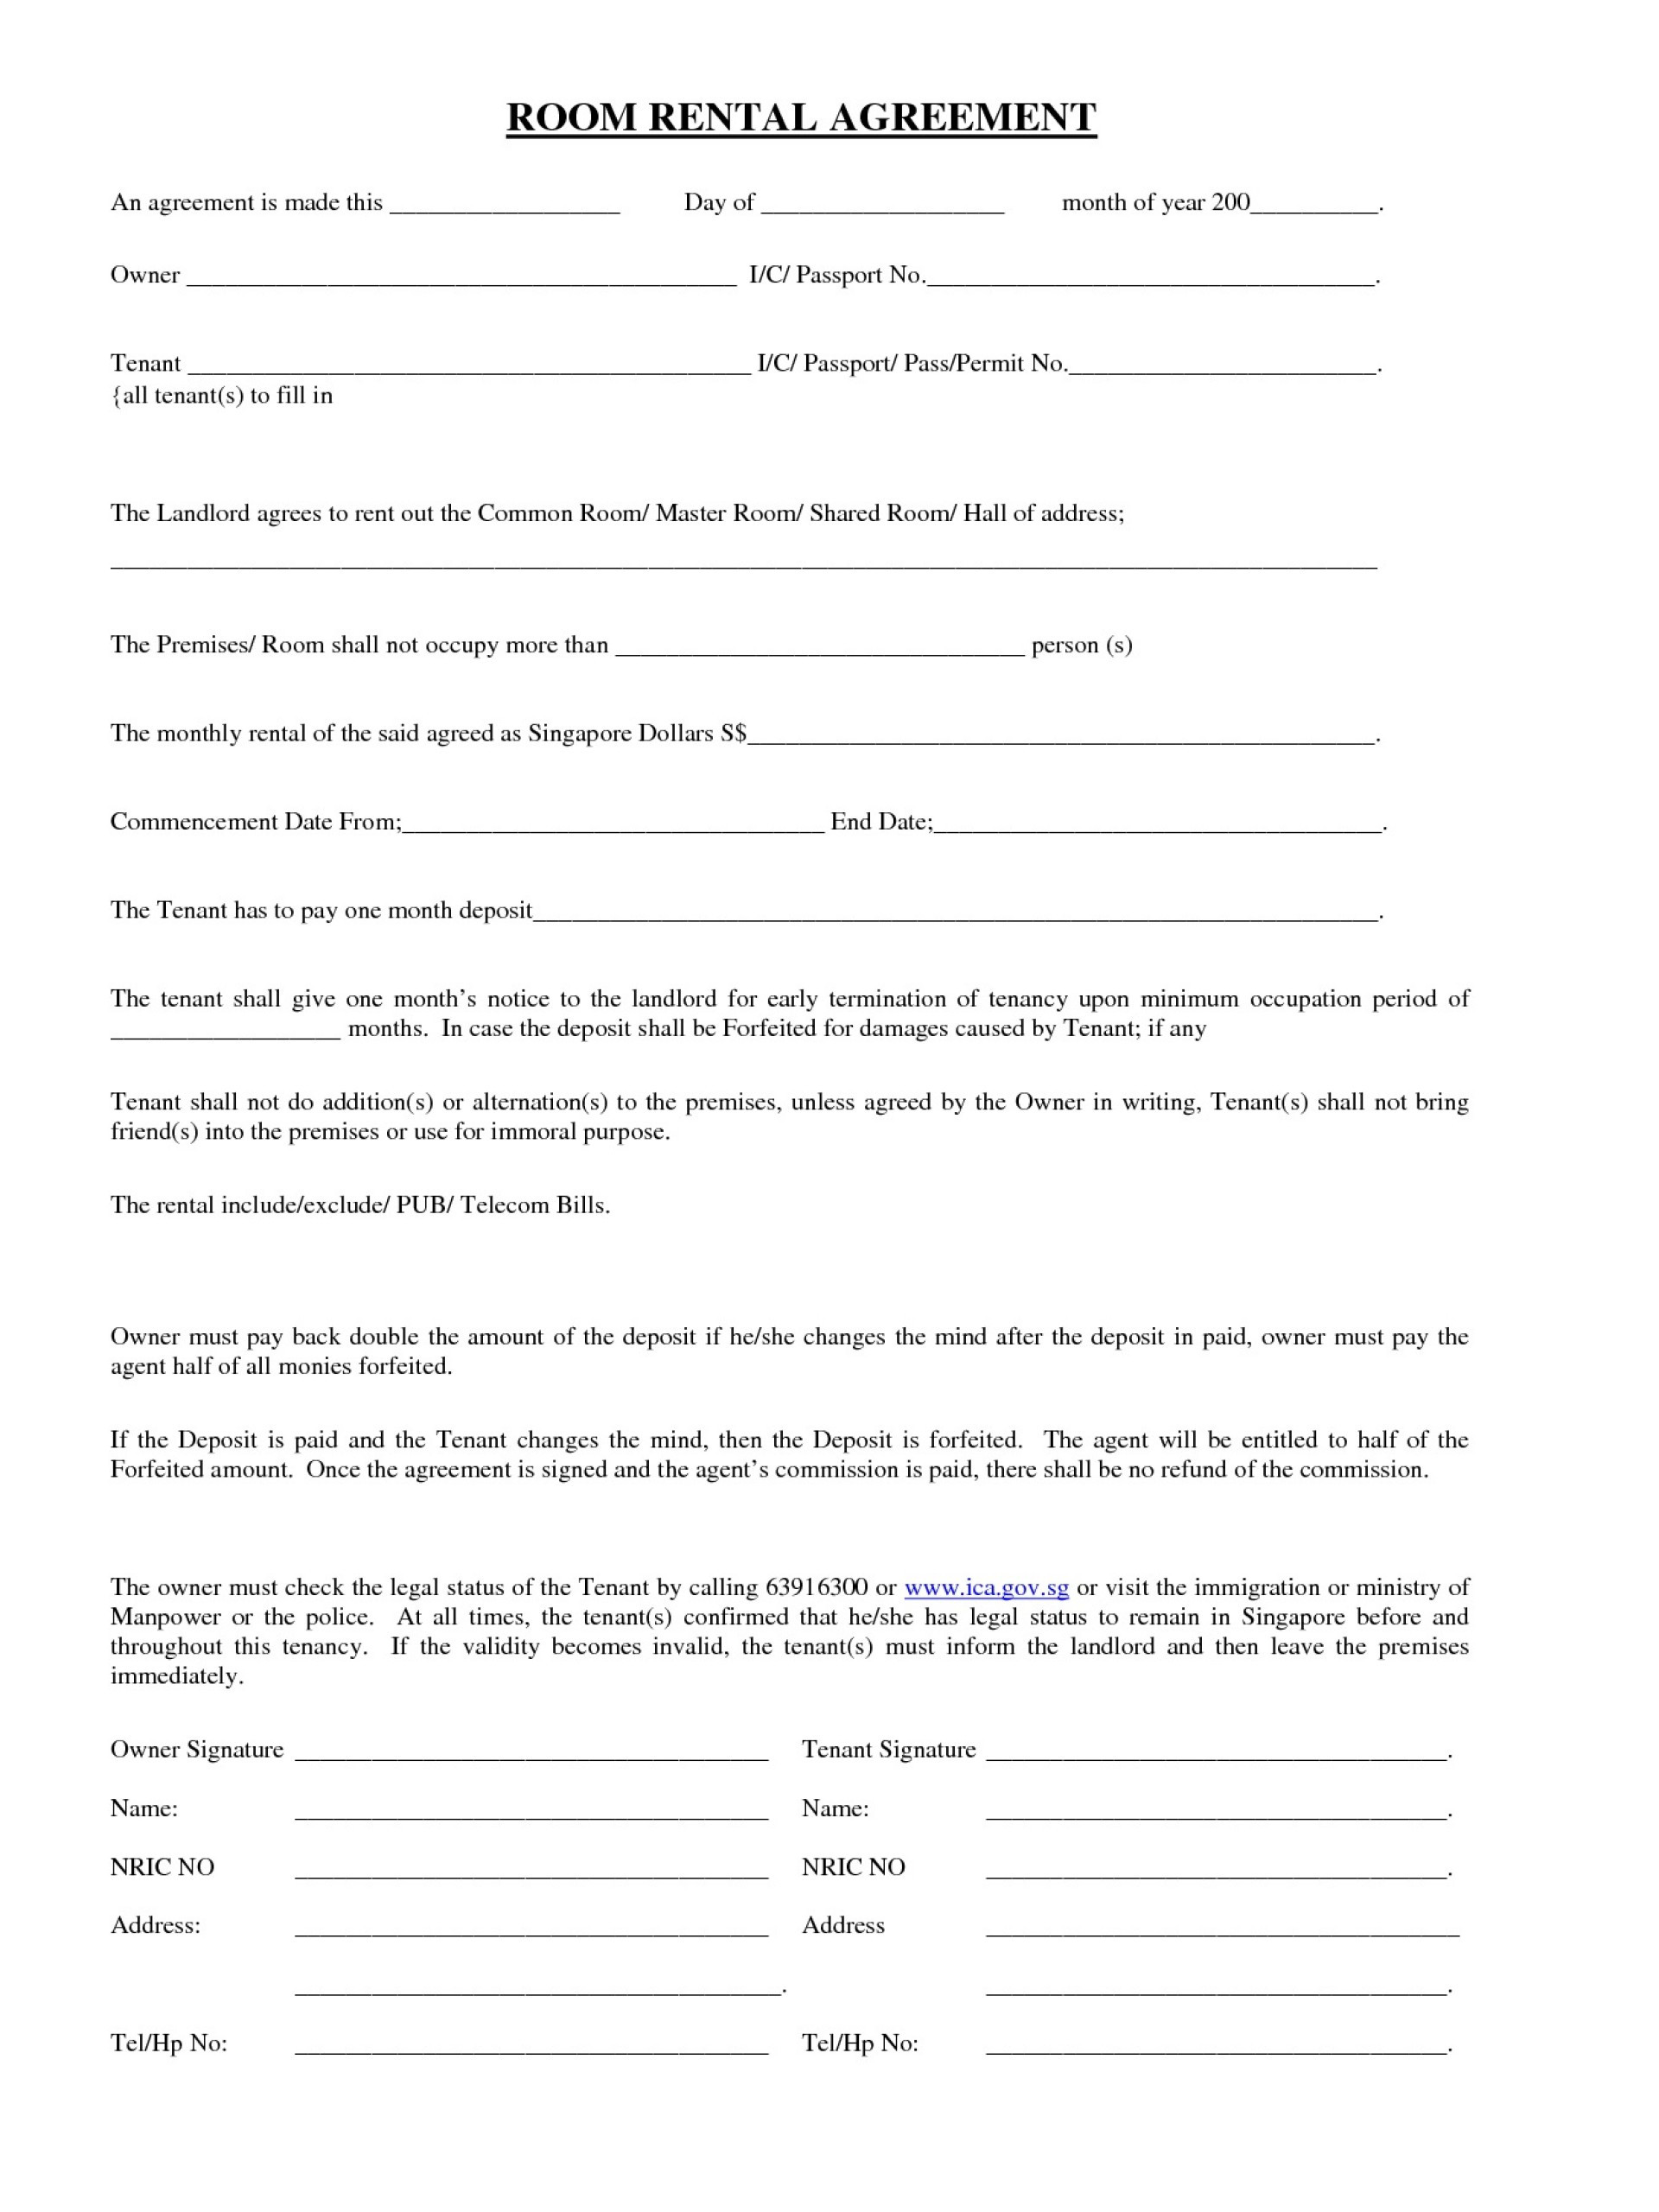 Room Rental Agreement Template